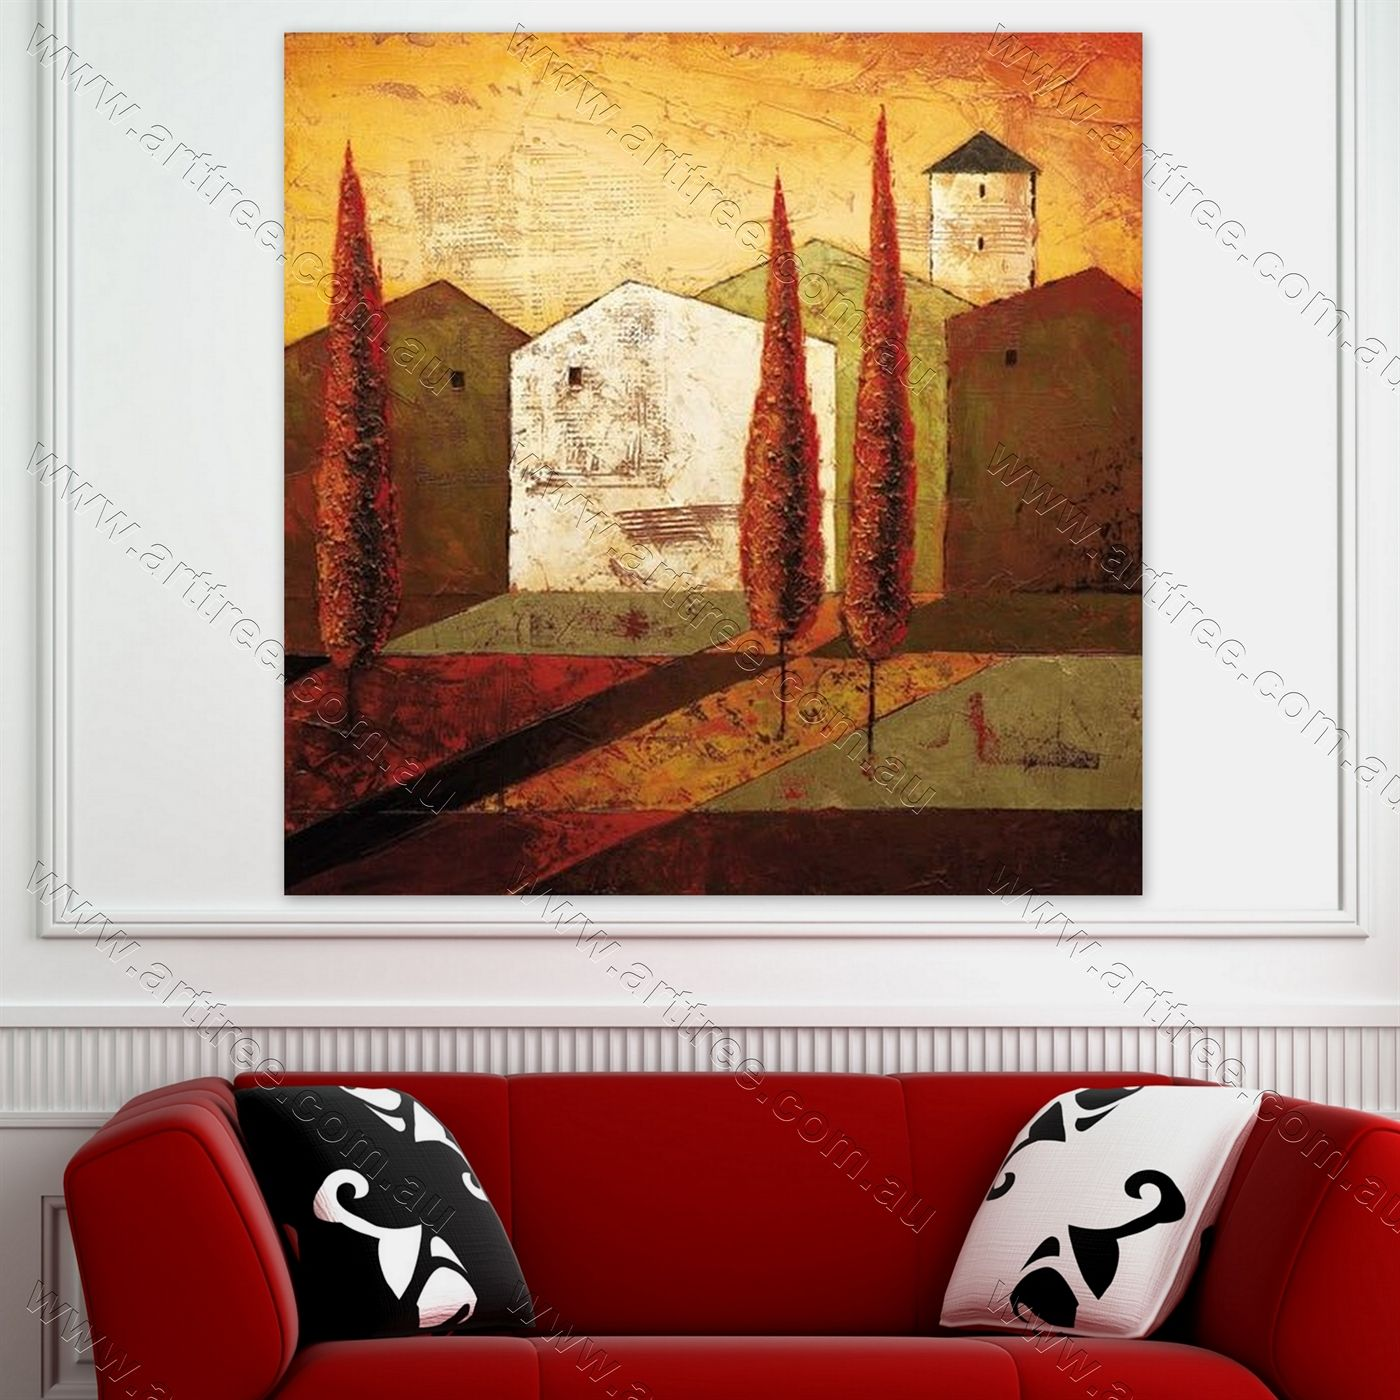 Long Tree Abstract Artwork For Home Office Decor